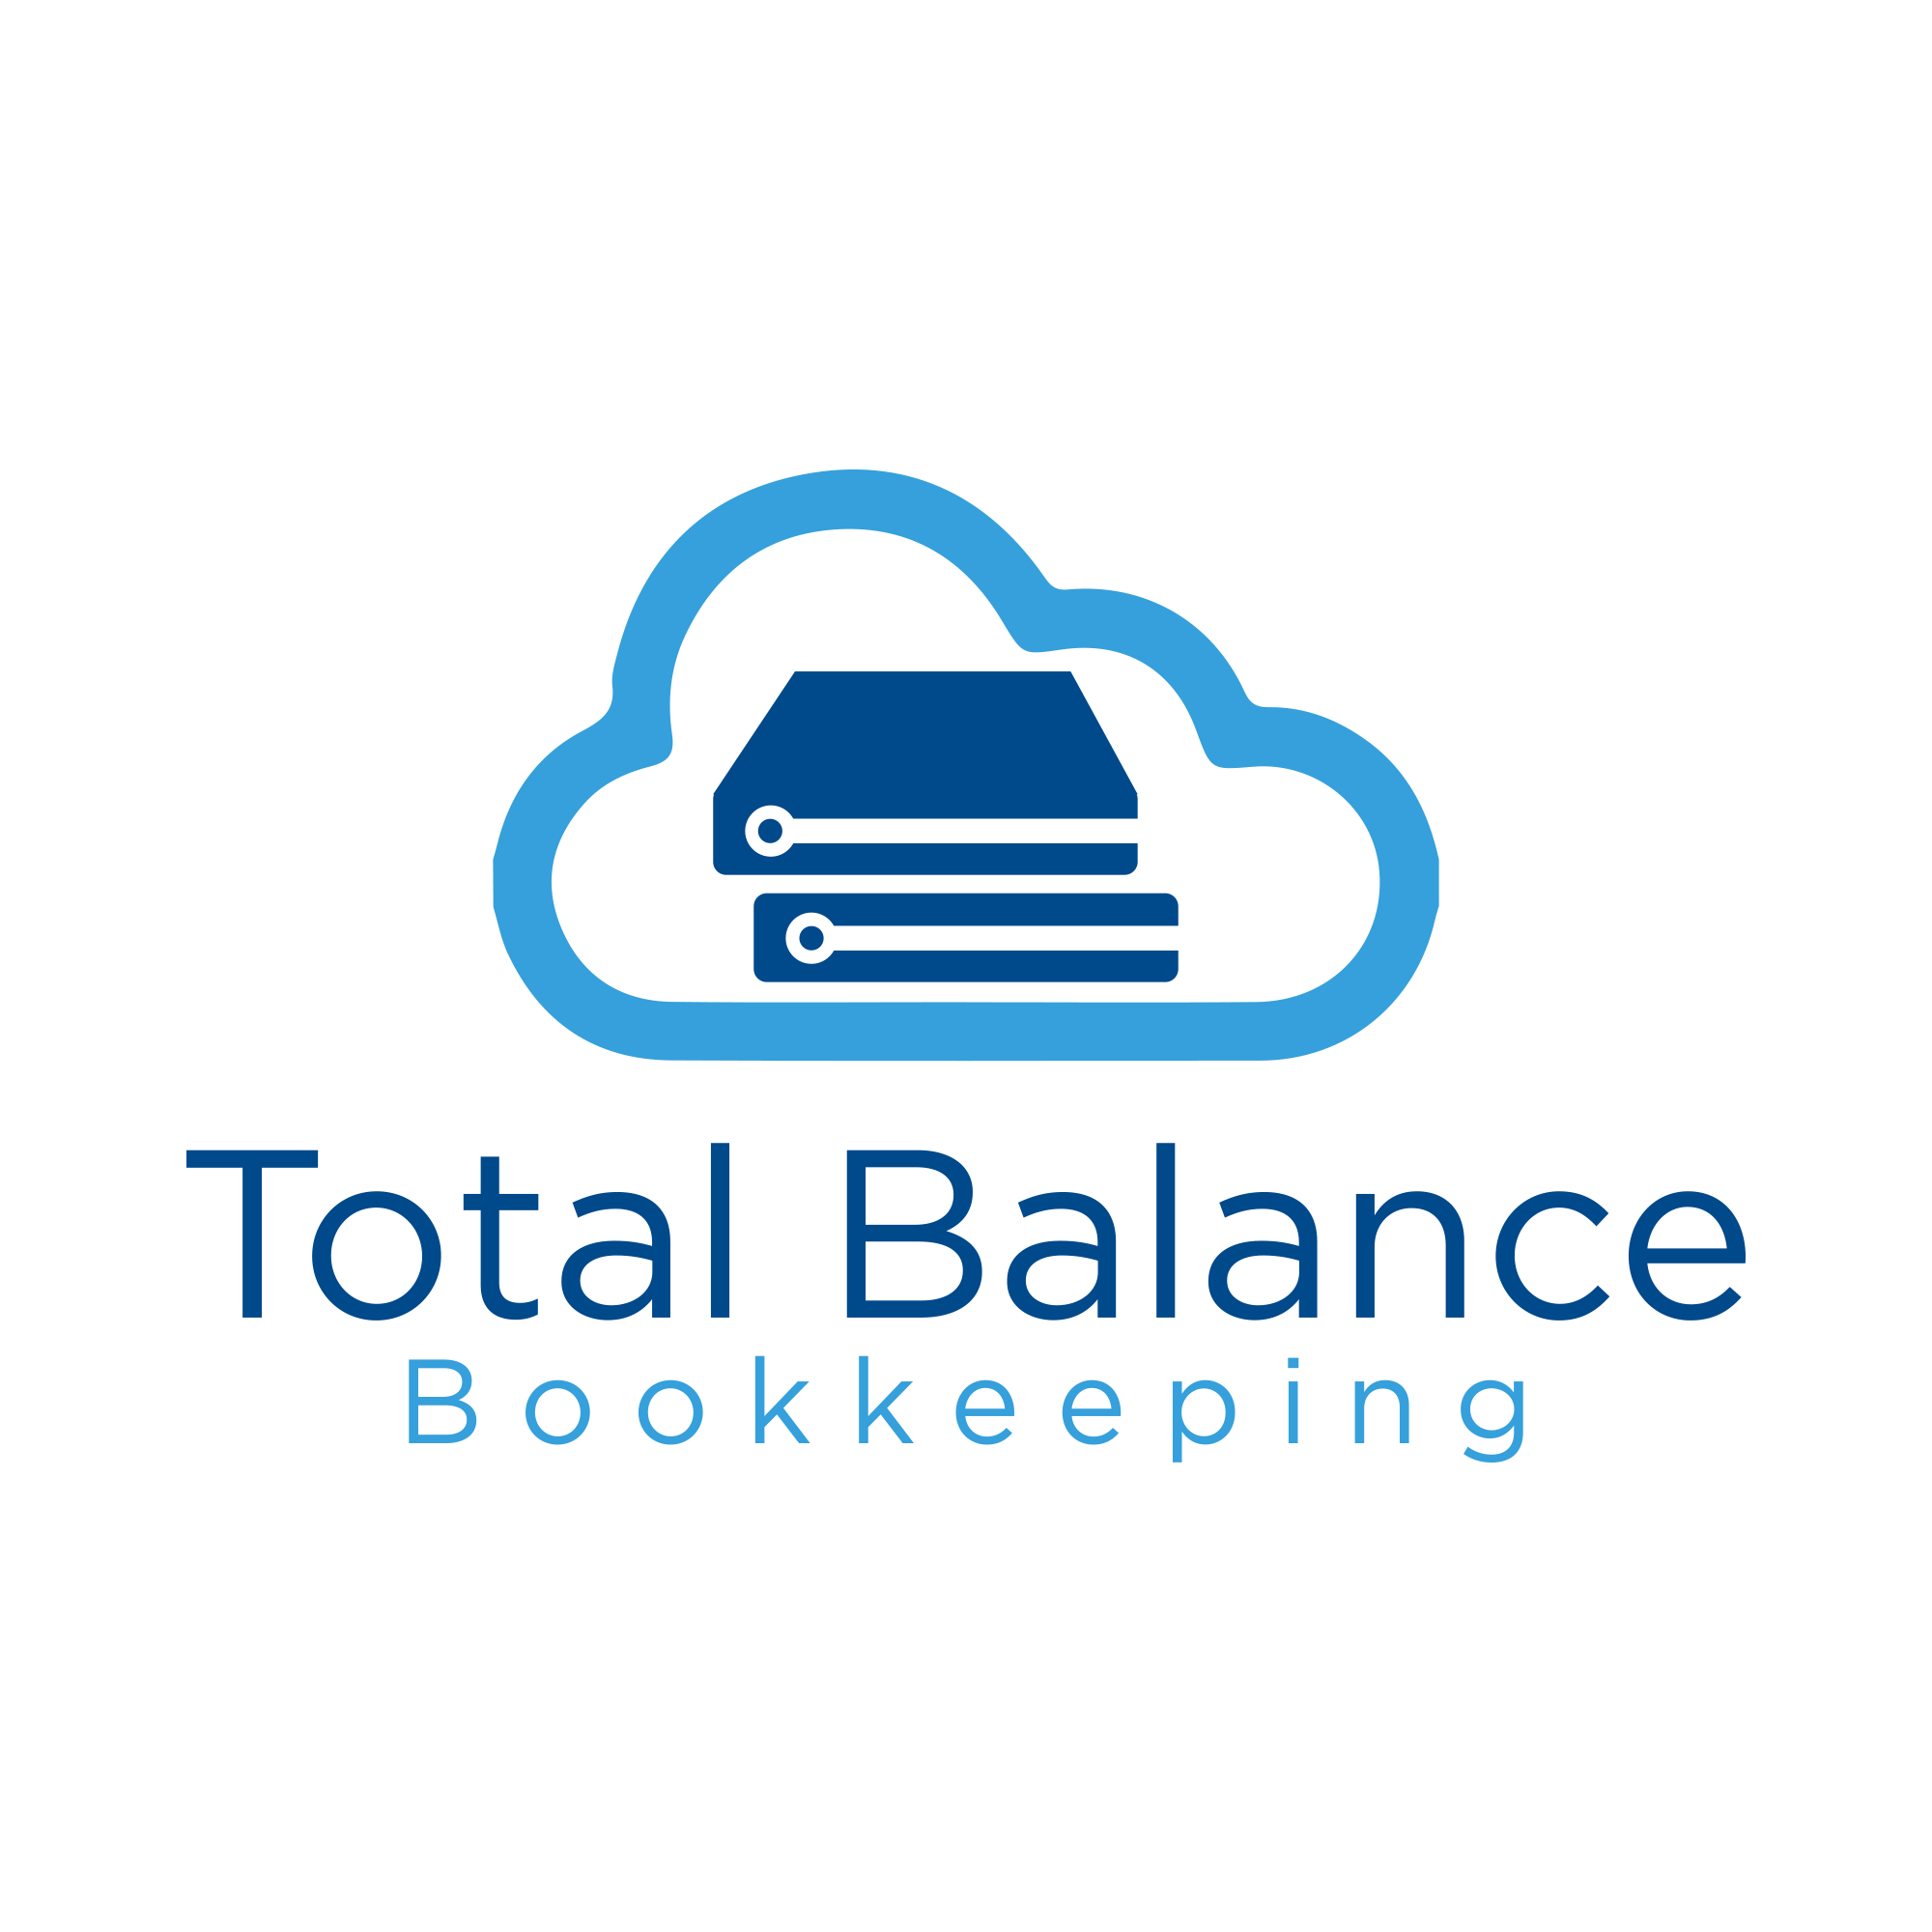 Total Balance Bookkeeping